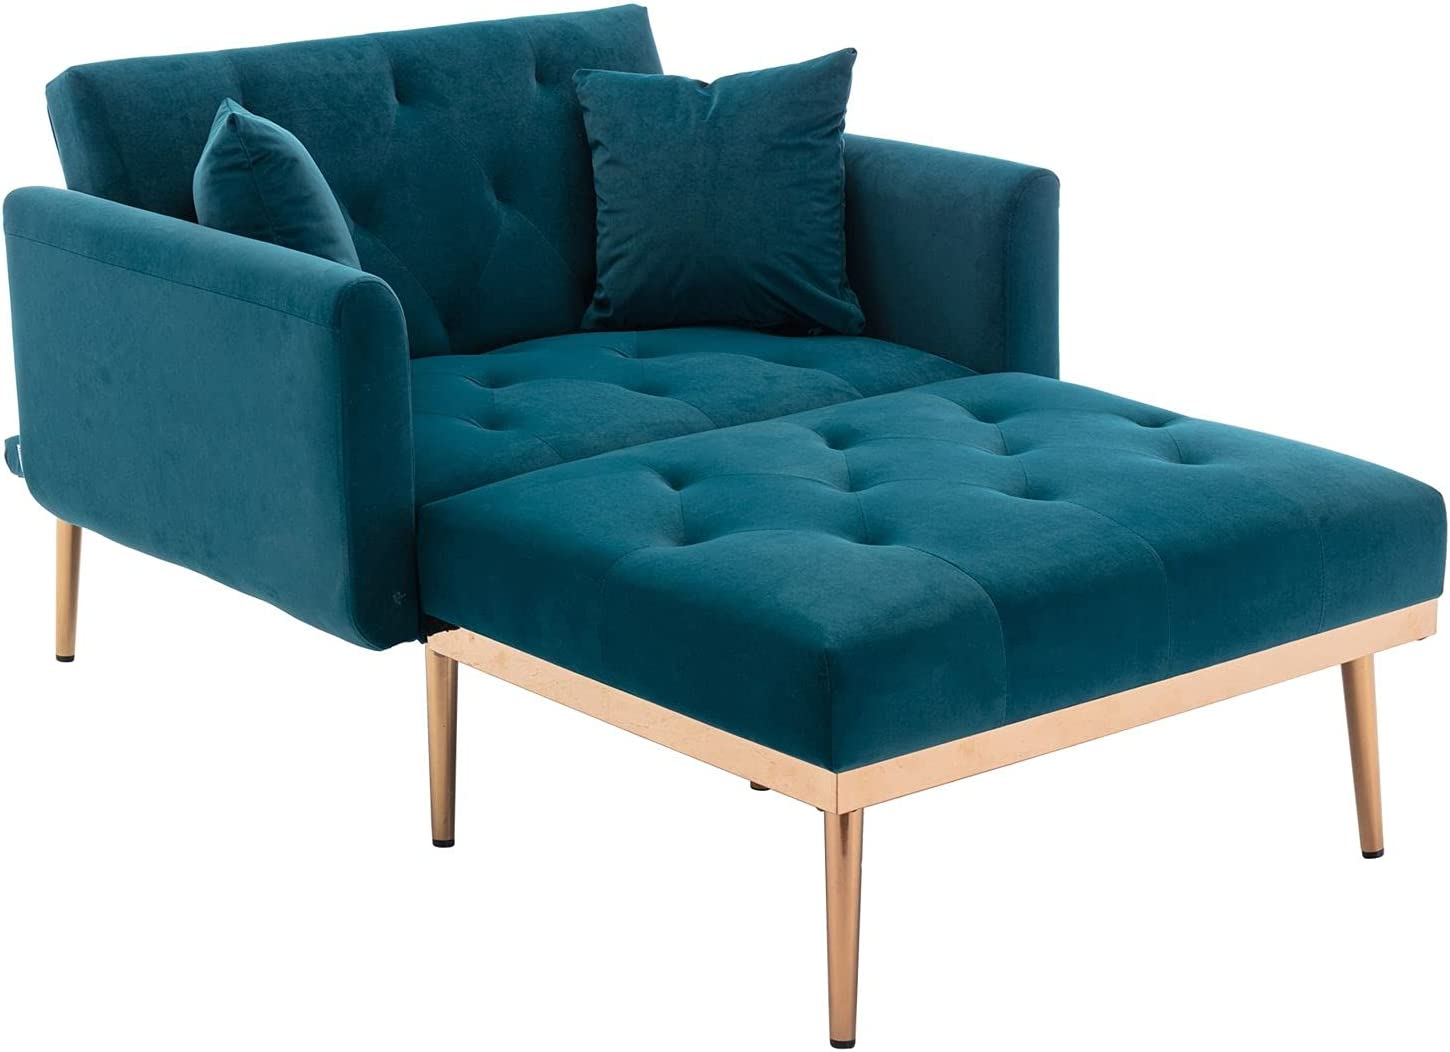 FRITHJILL Velvet Chaise Lounge sale Chair New York Mall Indoor Leisure Sofa Single